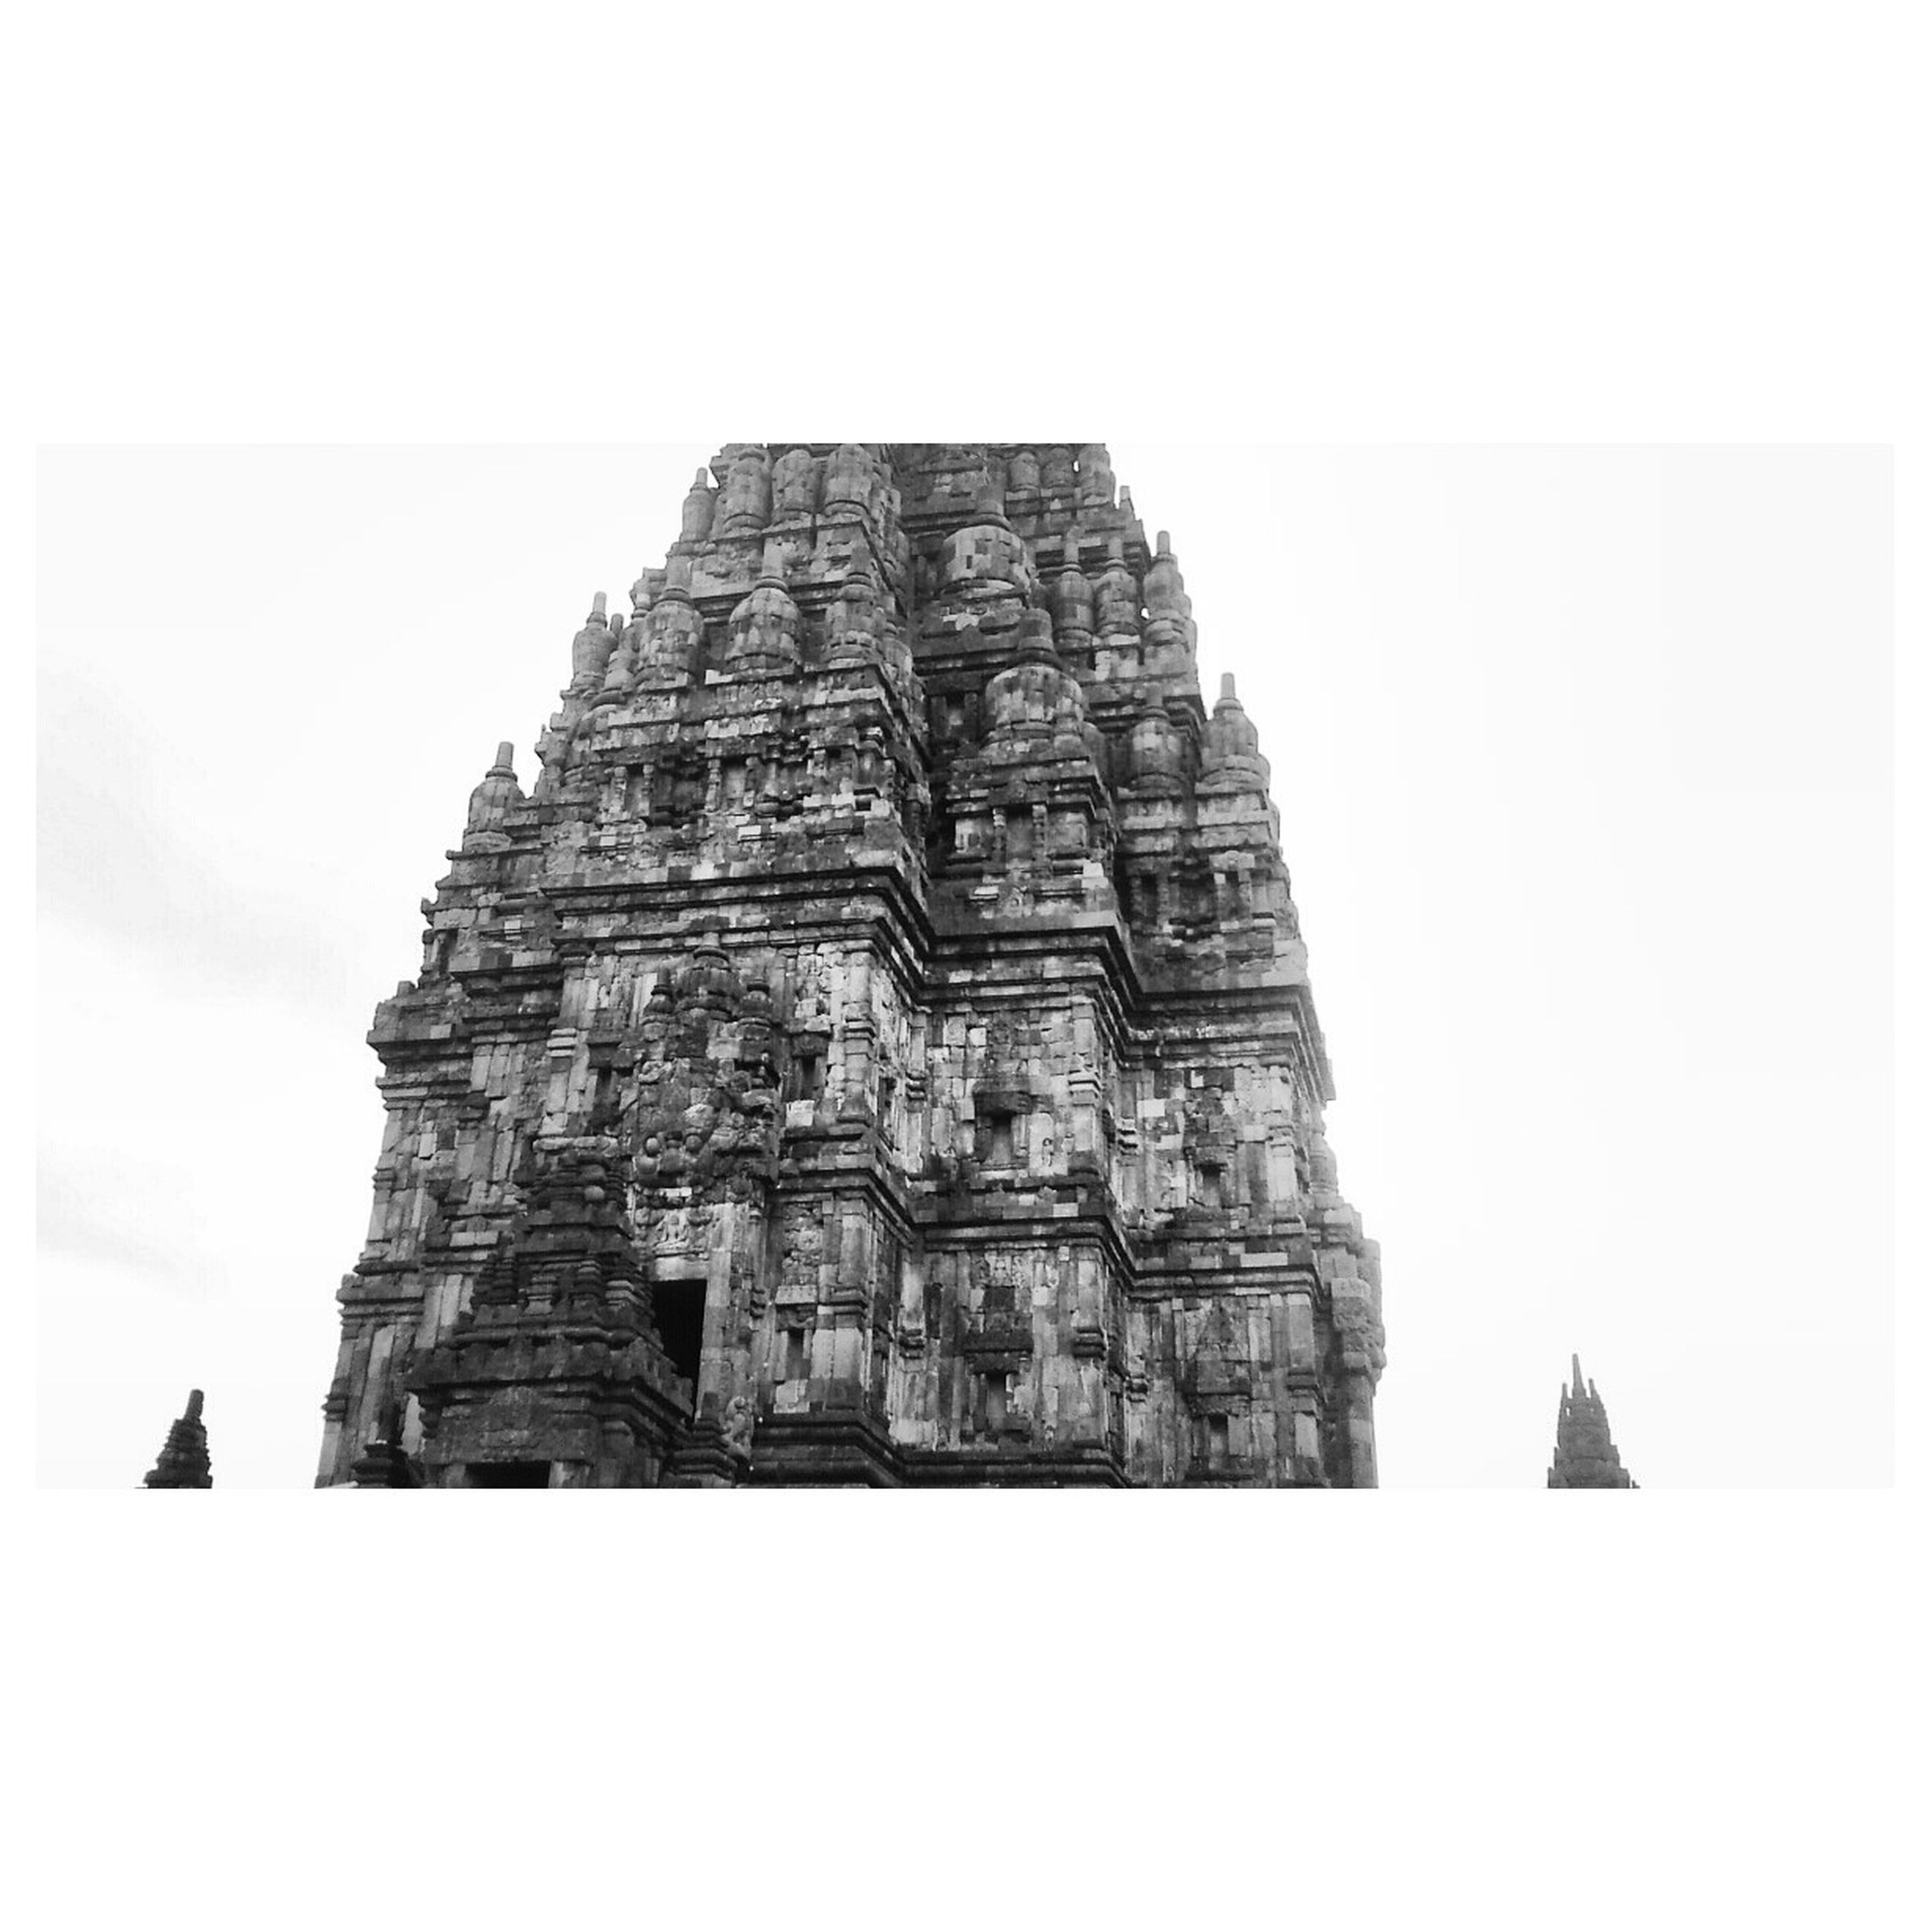 low angle view, clear sky, built structure, architecture, copy space, bird, history, building exterior, religion, transfer print, place of worship, animal themes, auto post production filter, sky, famous place, spirituality, ancient, sculpture, statue, outdoors